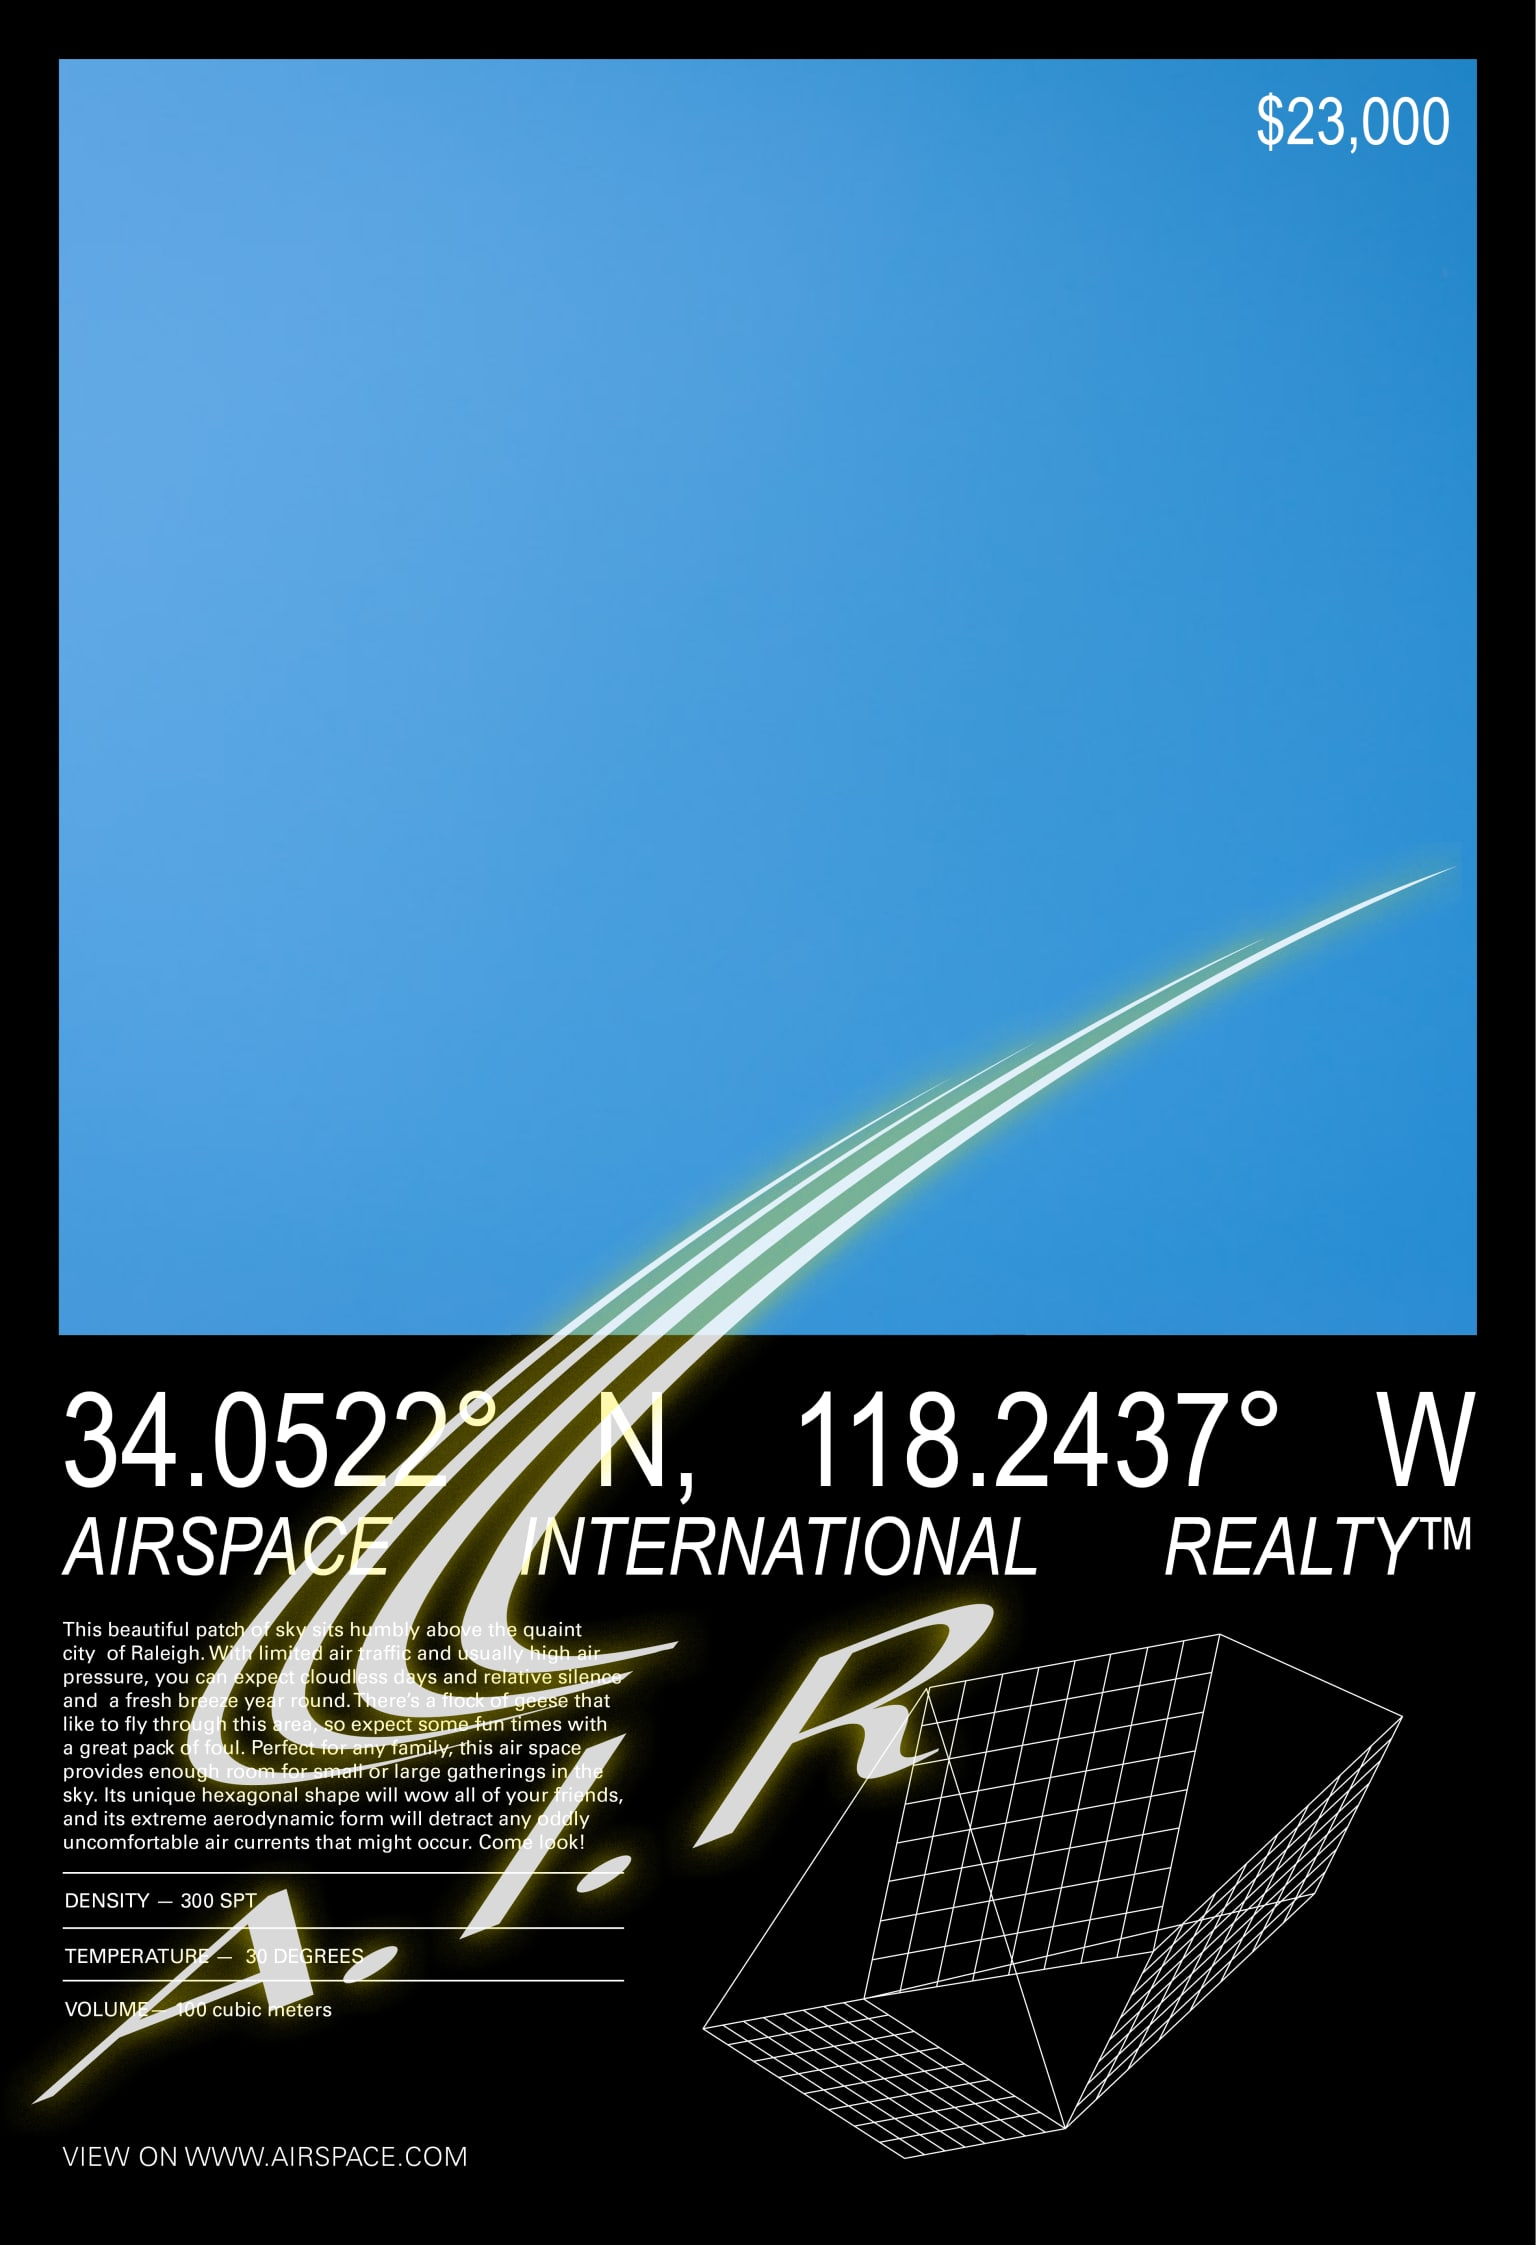 Airspace International Realty